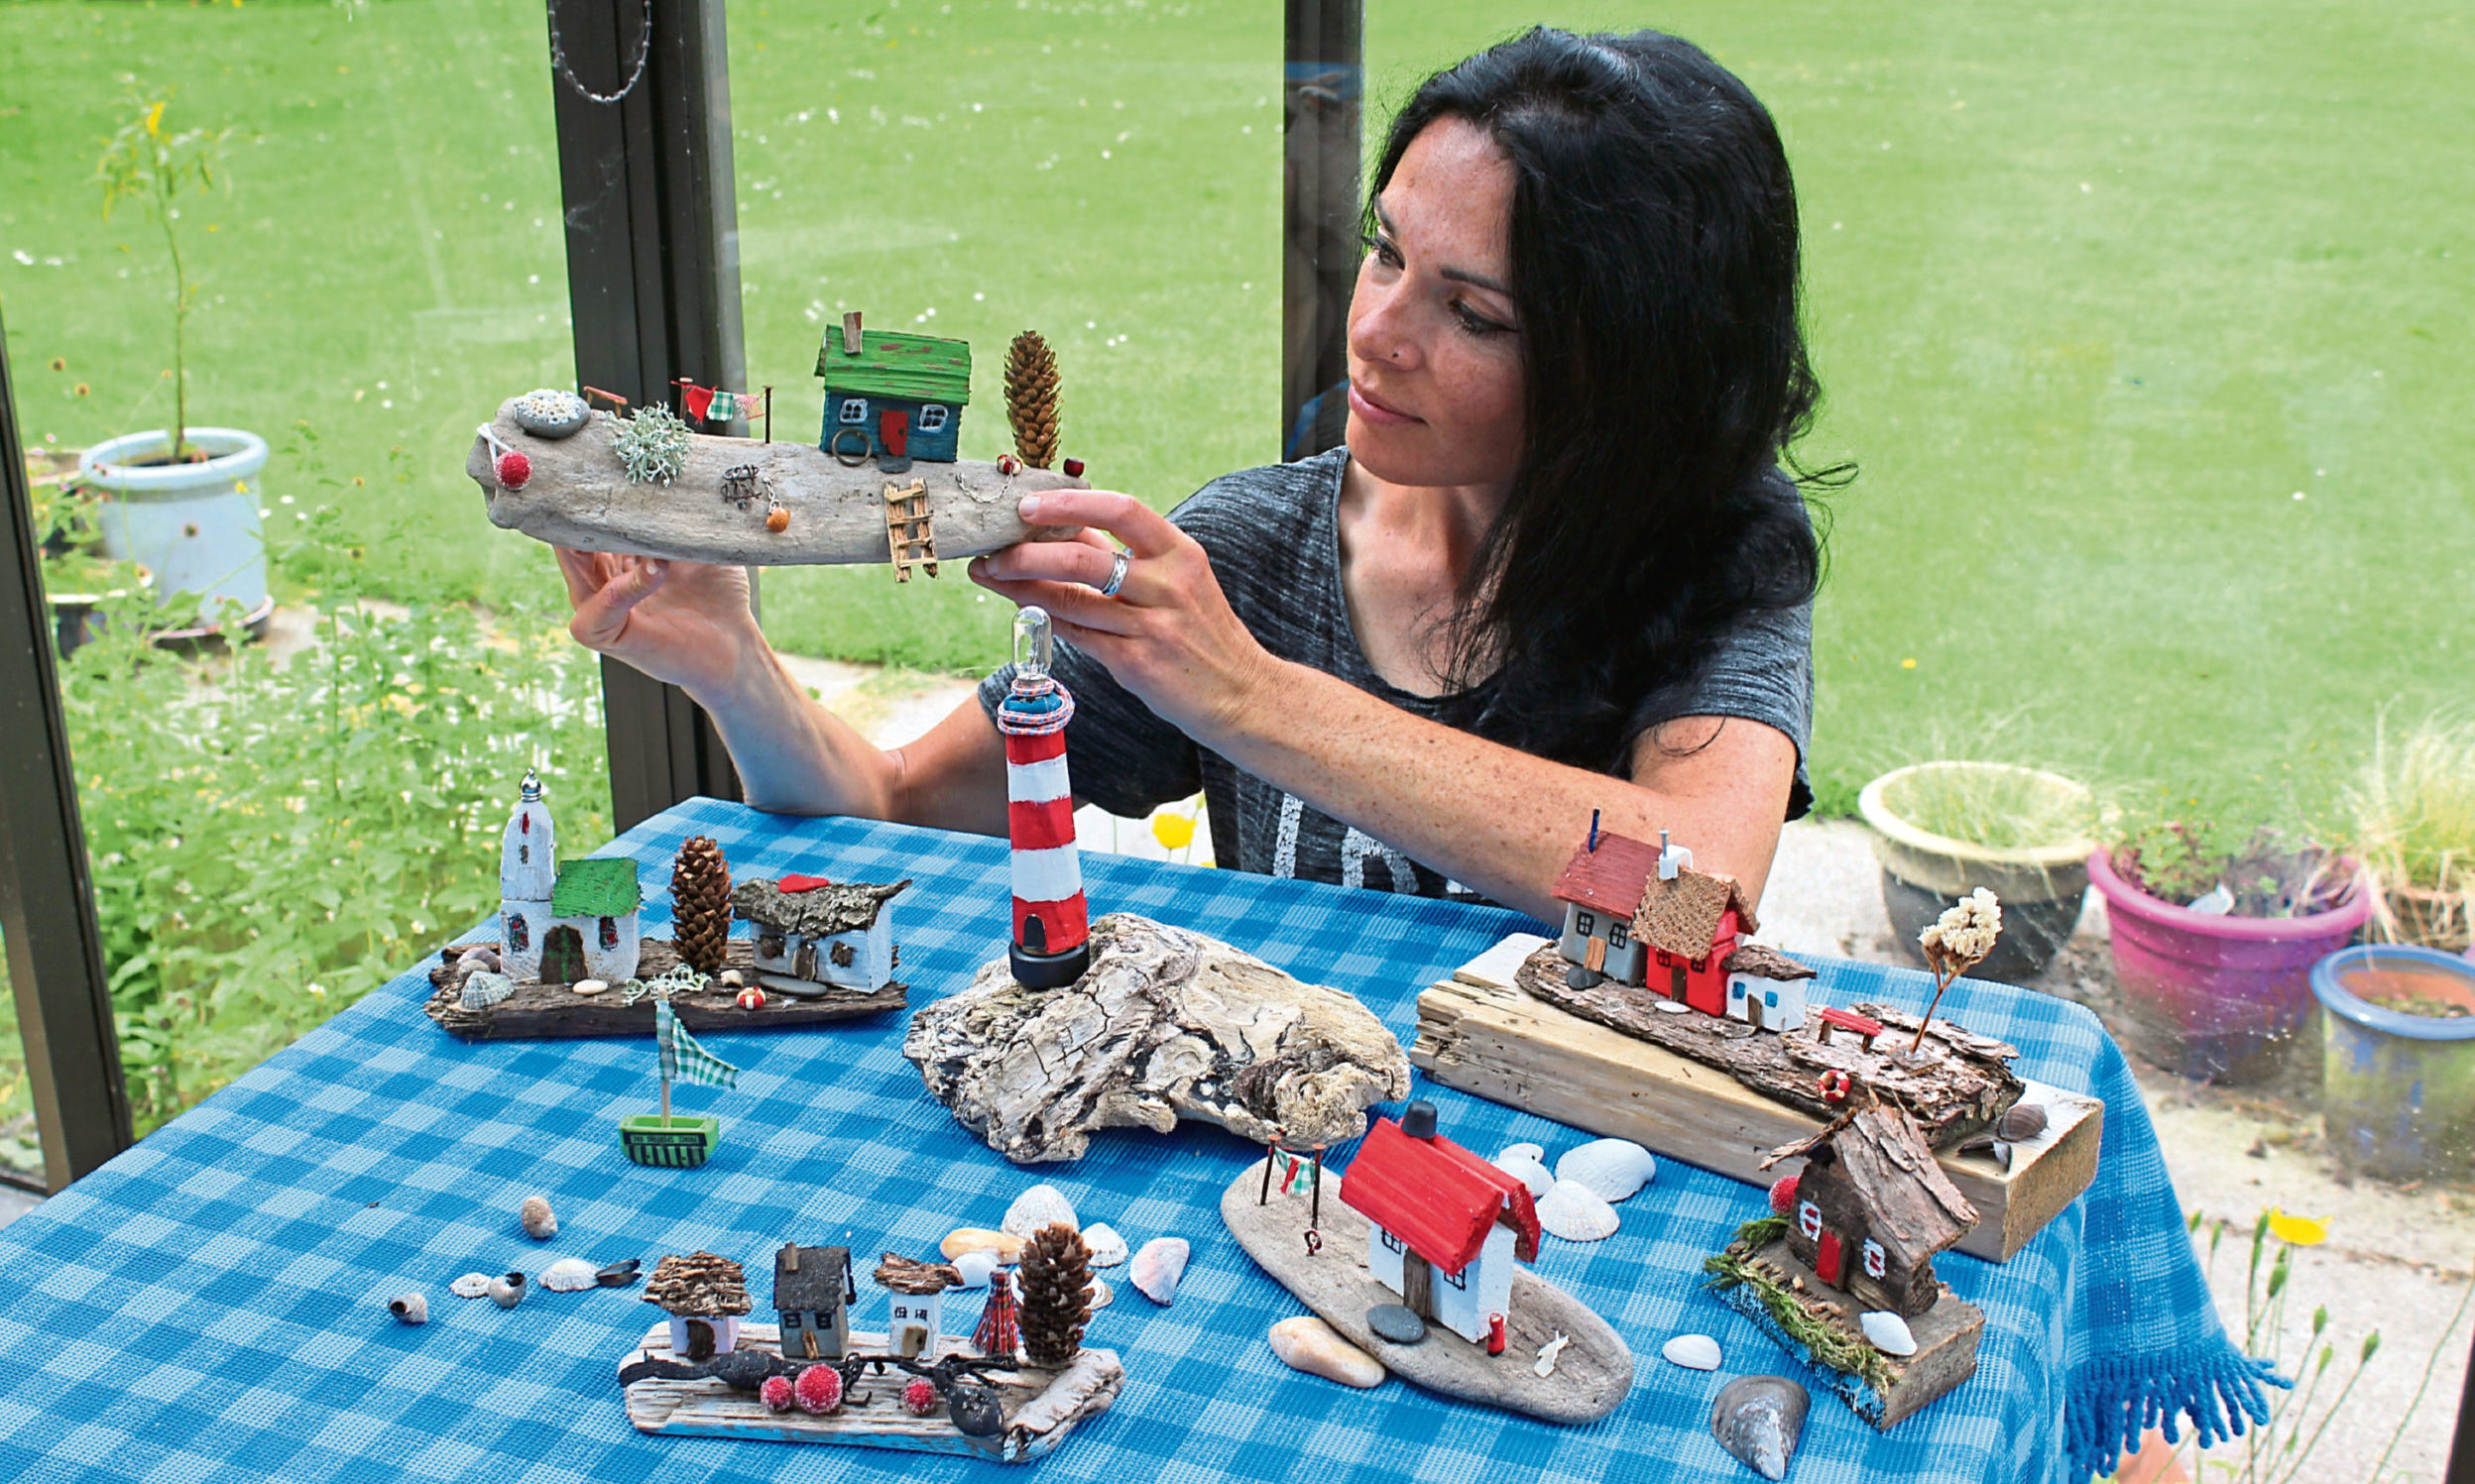 Gayle crafted her own driftwood village - cobbled together from seaside scraps found at Forvie Sands in Aberdeenshire.